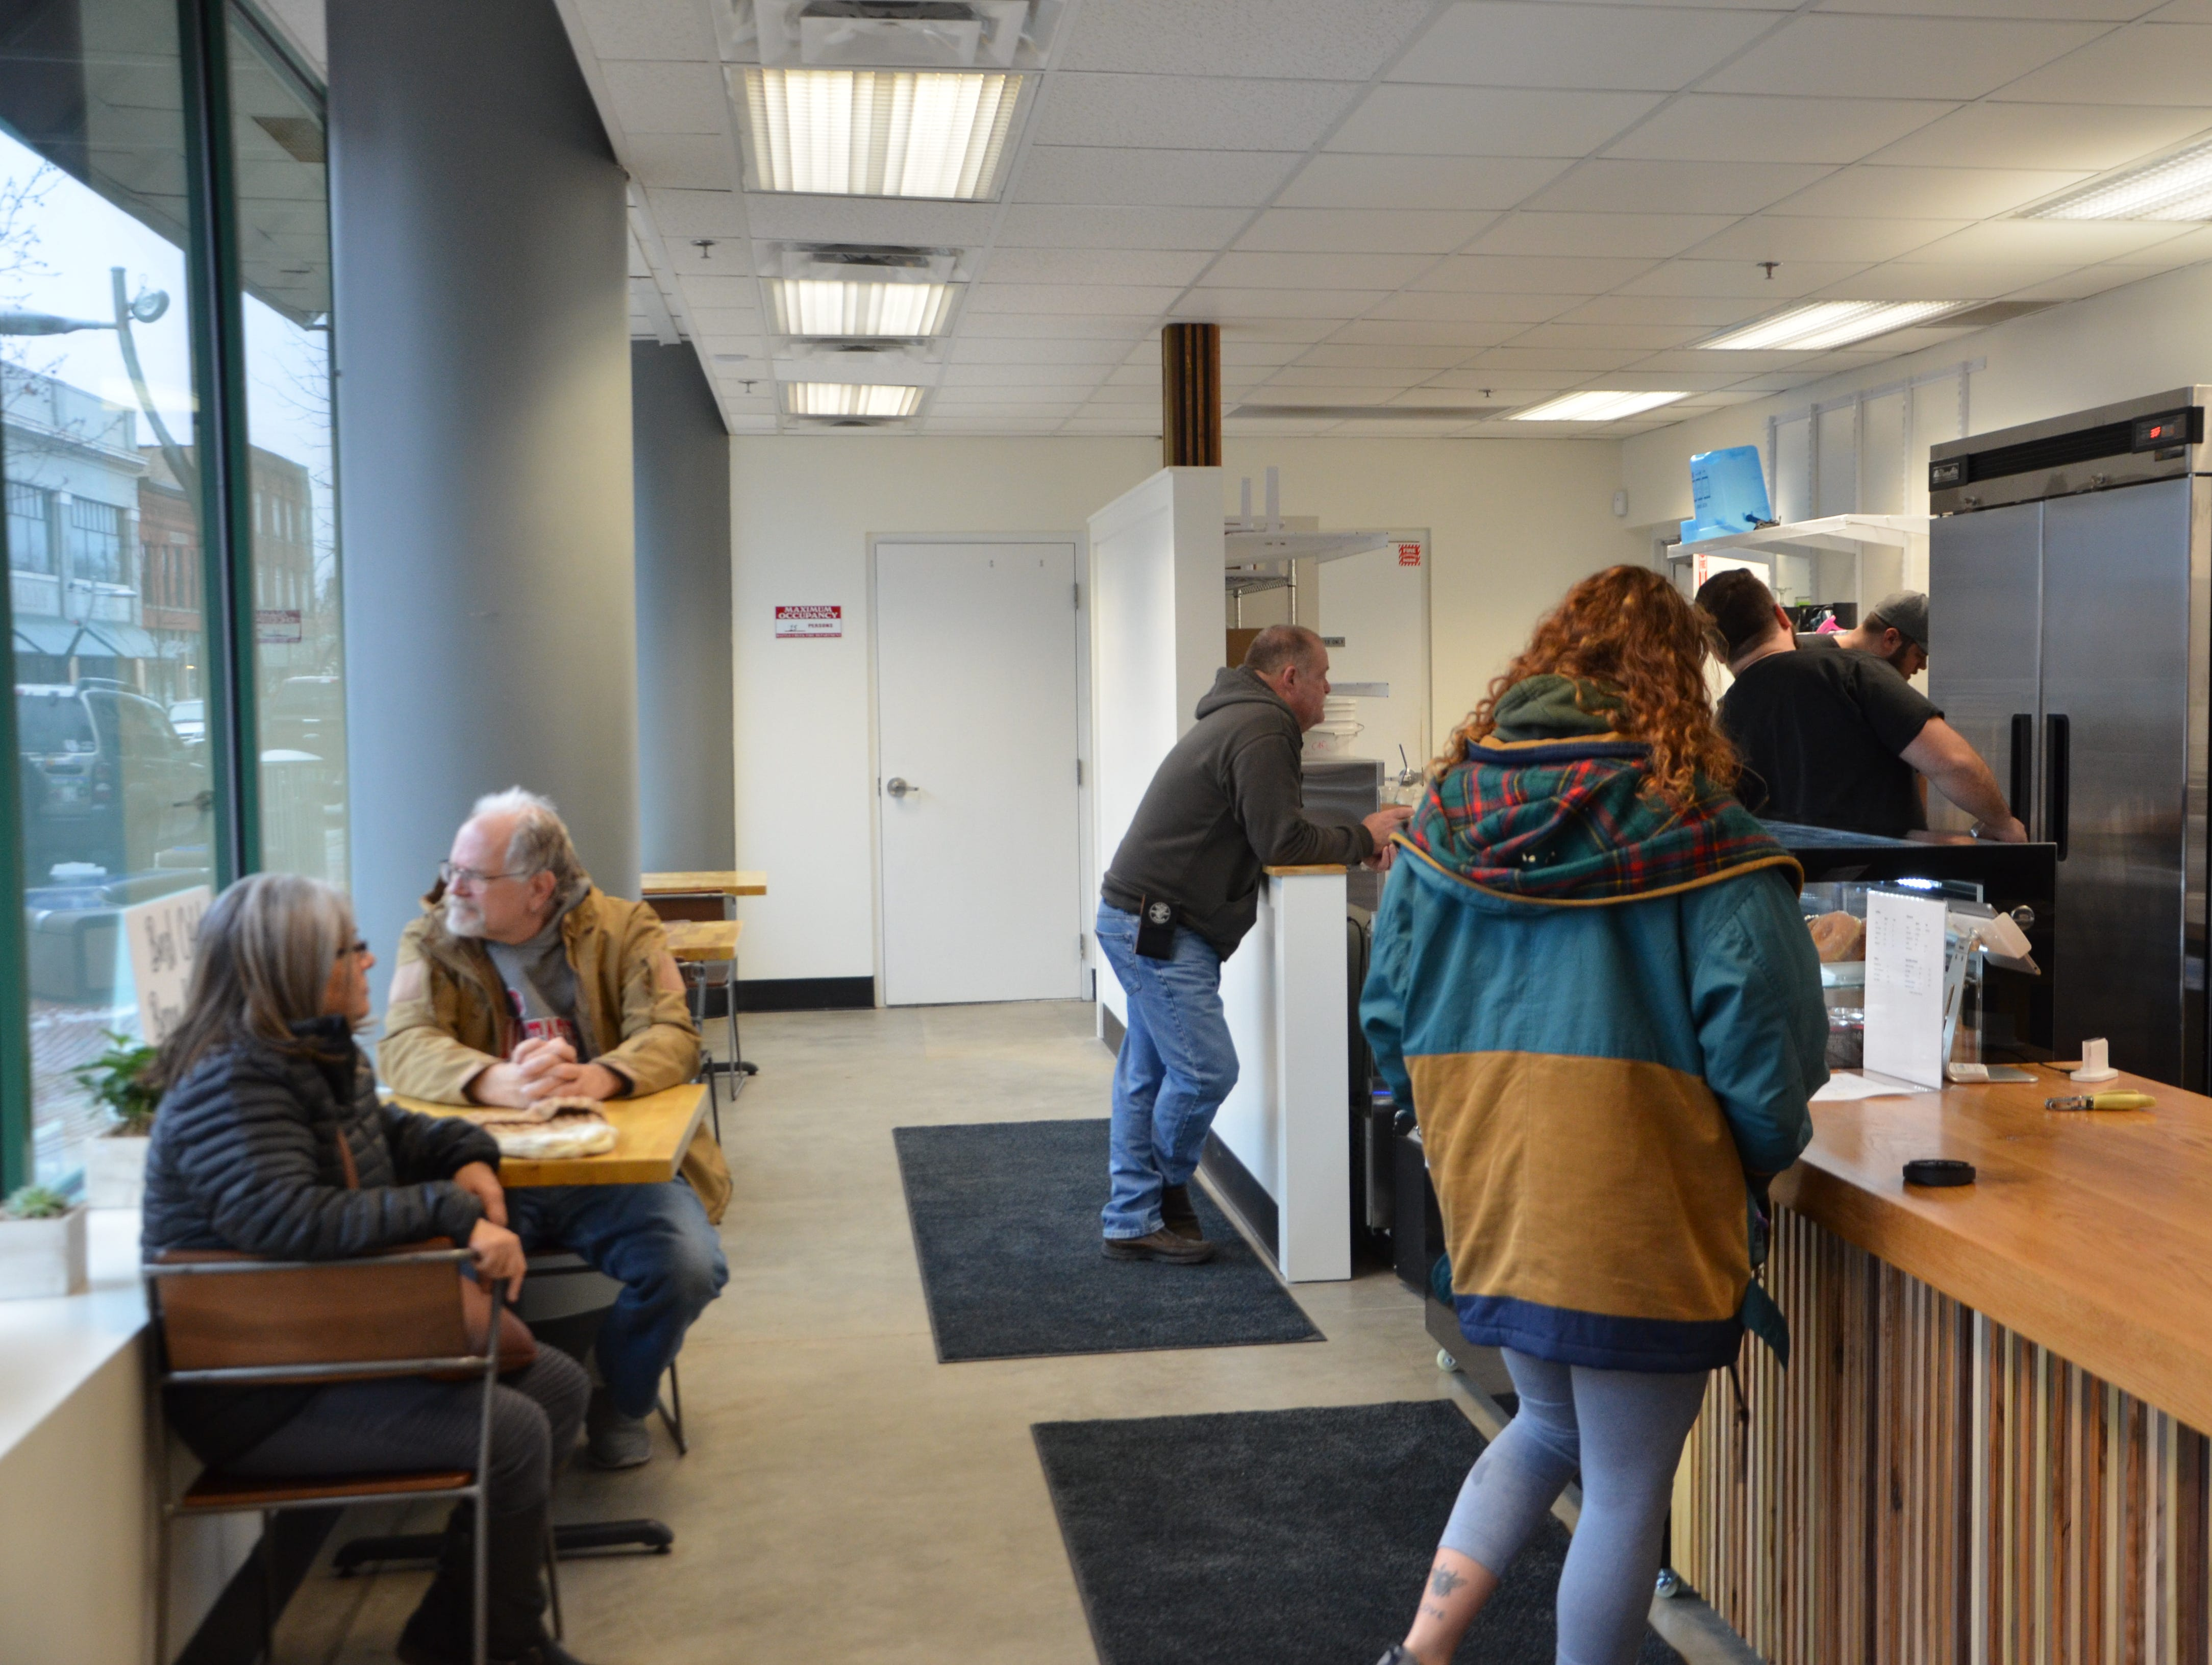 Cafe Rica reopened starting Wednesday, Feb. 6, 2019, at kiCH(ə)n, the new retail food service incubator at 80 West Michigan Ave.